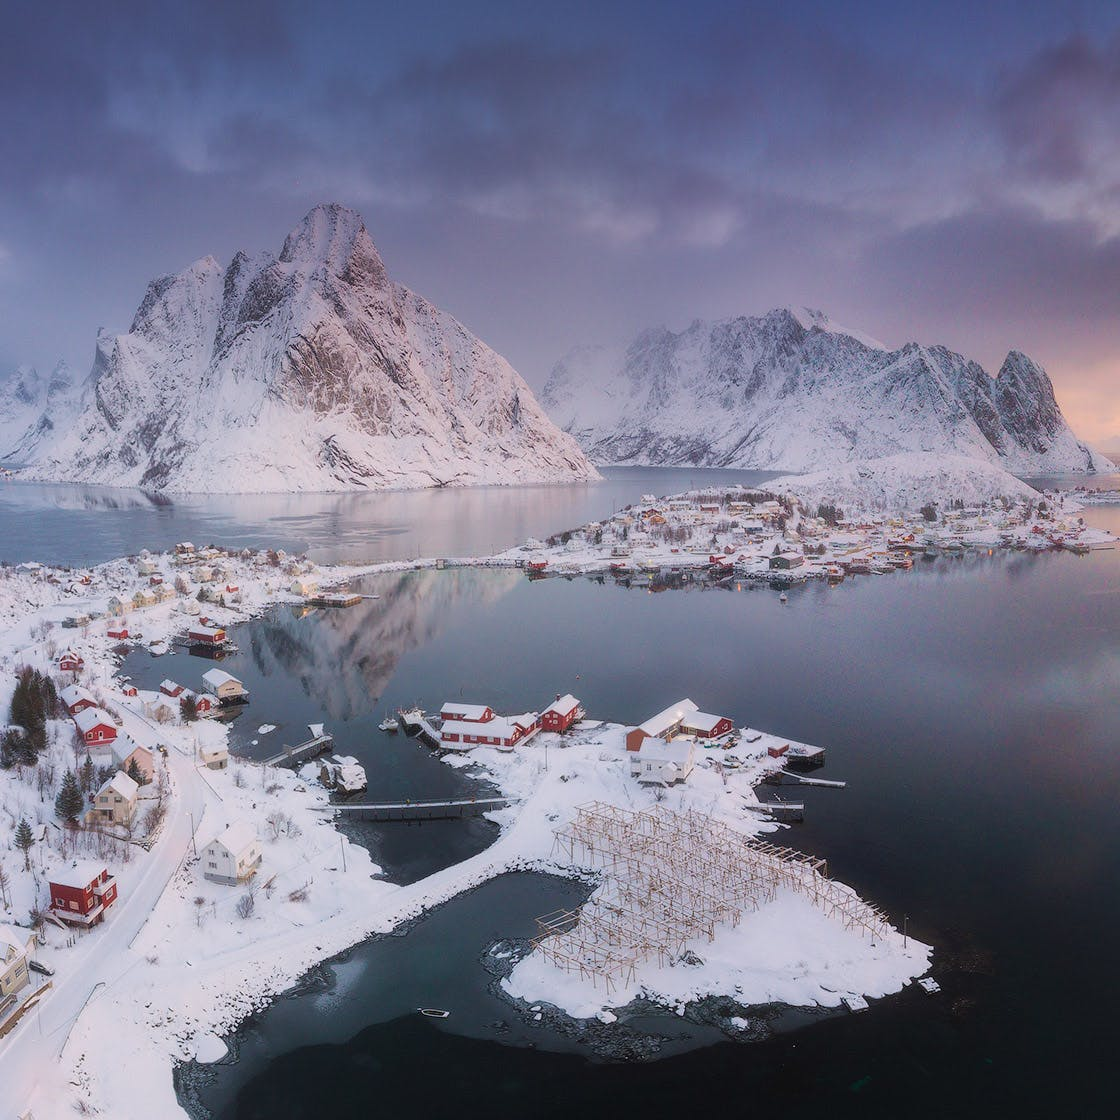 9-Day Winter Photo Workshop in the Lofoten Islands of Norway - day 8